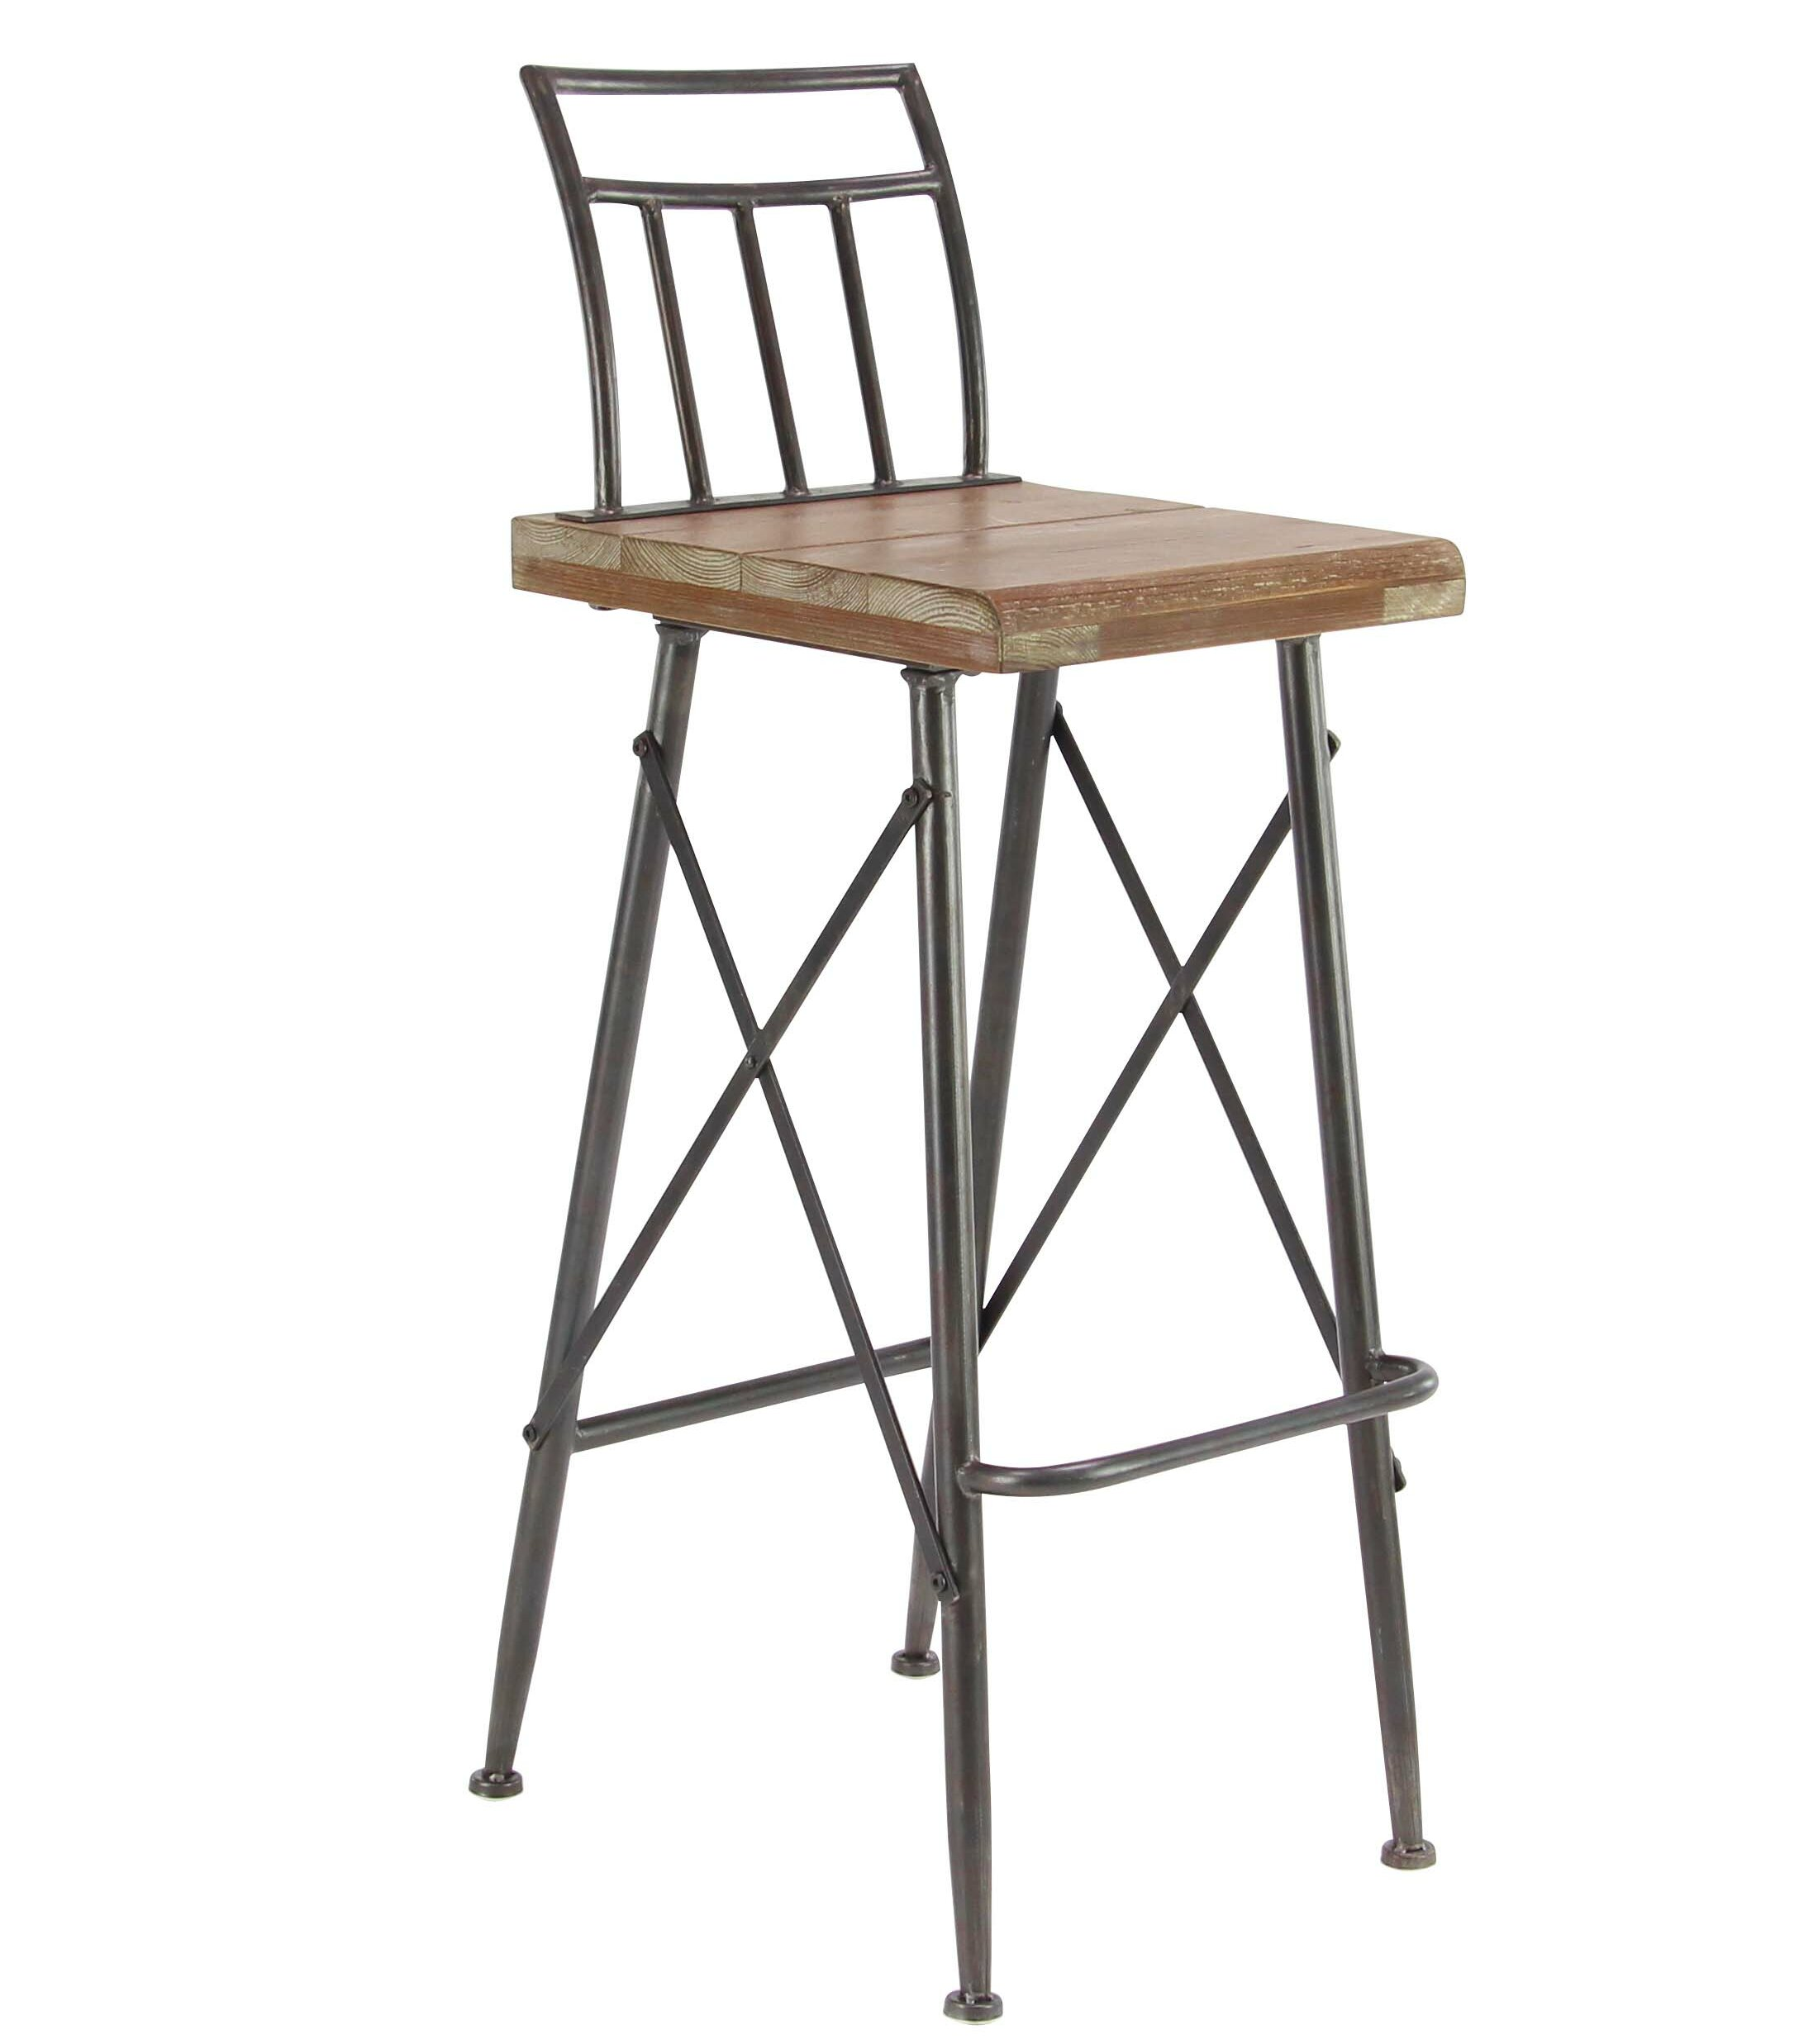 Fabulous Brookview Modern Distressed Square Bar Stool Machost Co Dining Chair Design Ideas Machostcouk